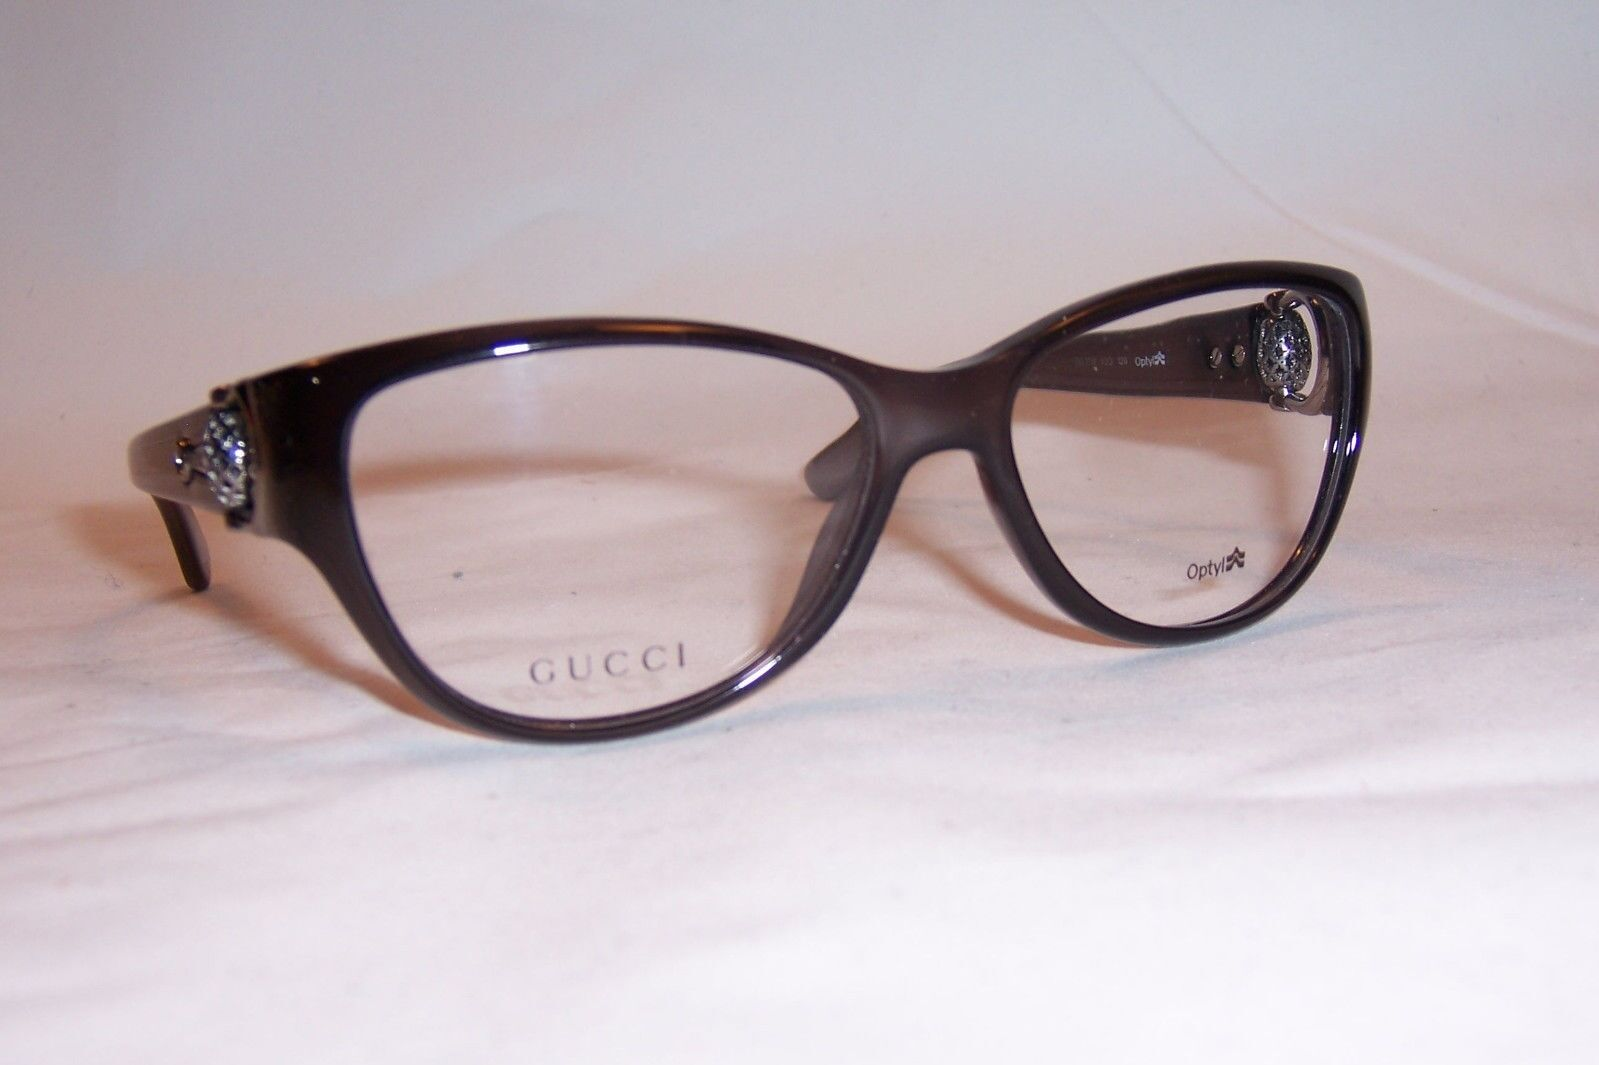 86437d52ae9 Gucci Eyeglasses GG 3714 X20 100 Authentic for sale online